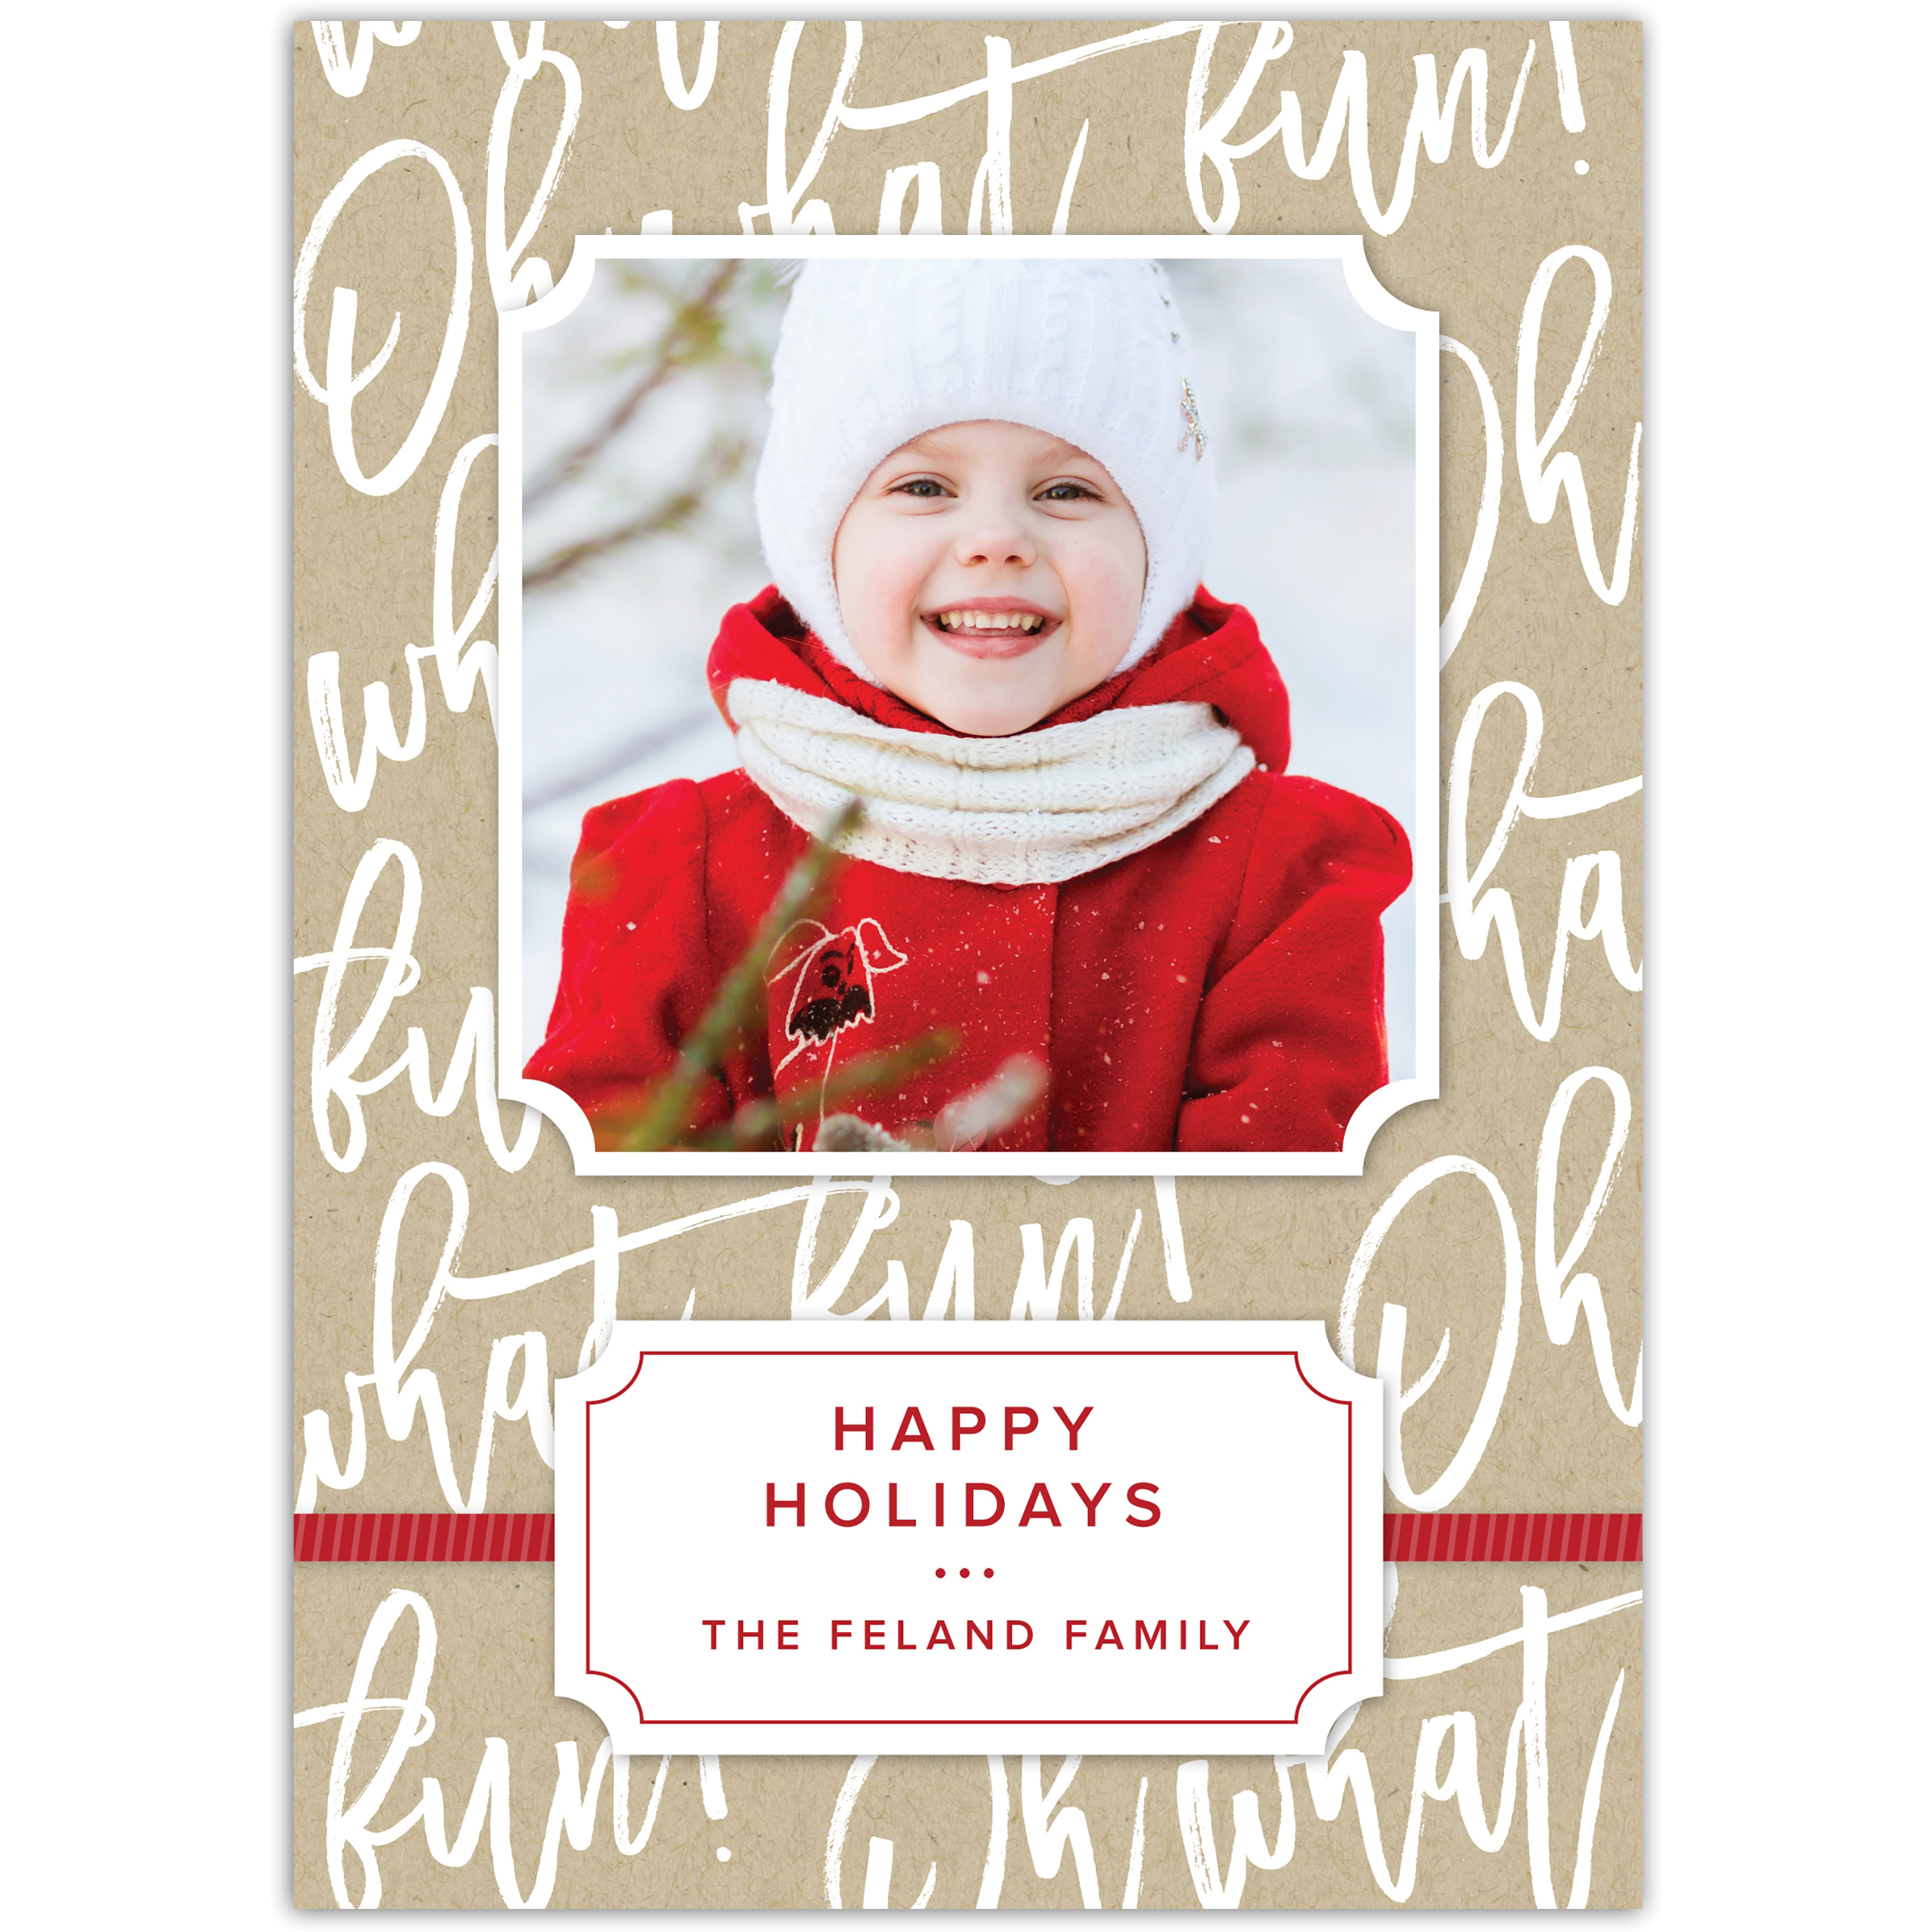 Whimsical Type - 5x7 Personalized Holiday Card